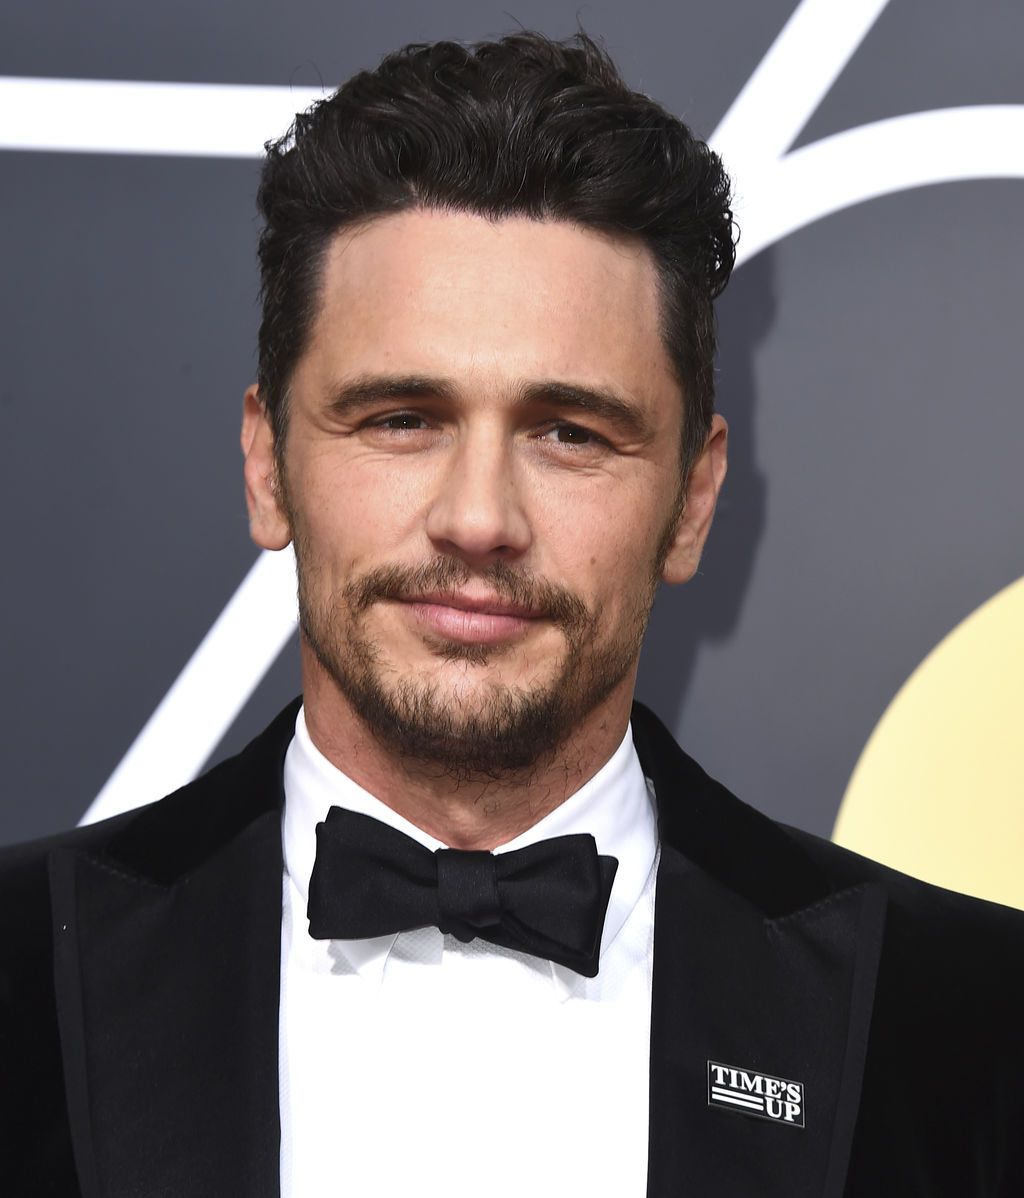 James Franco, acusado de acoso sexual por tres actrices tras ganar el Globo de Oro a Mejor Actor